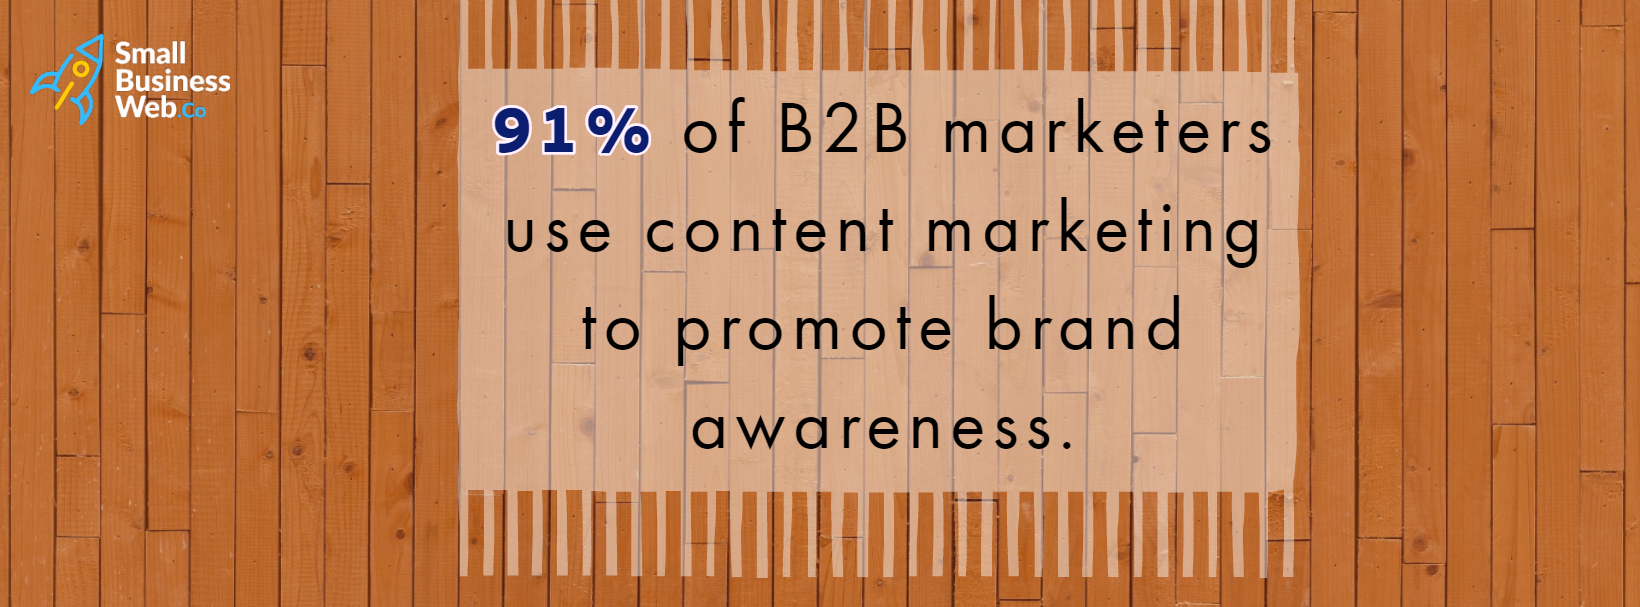 branding-stats-for-small-business